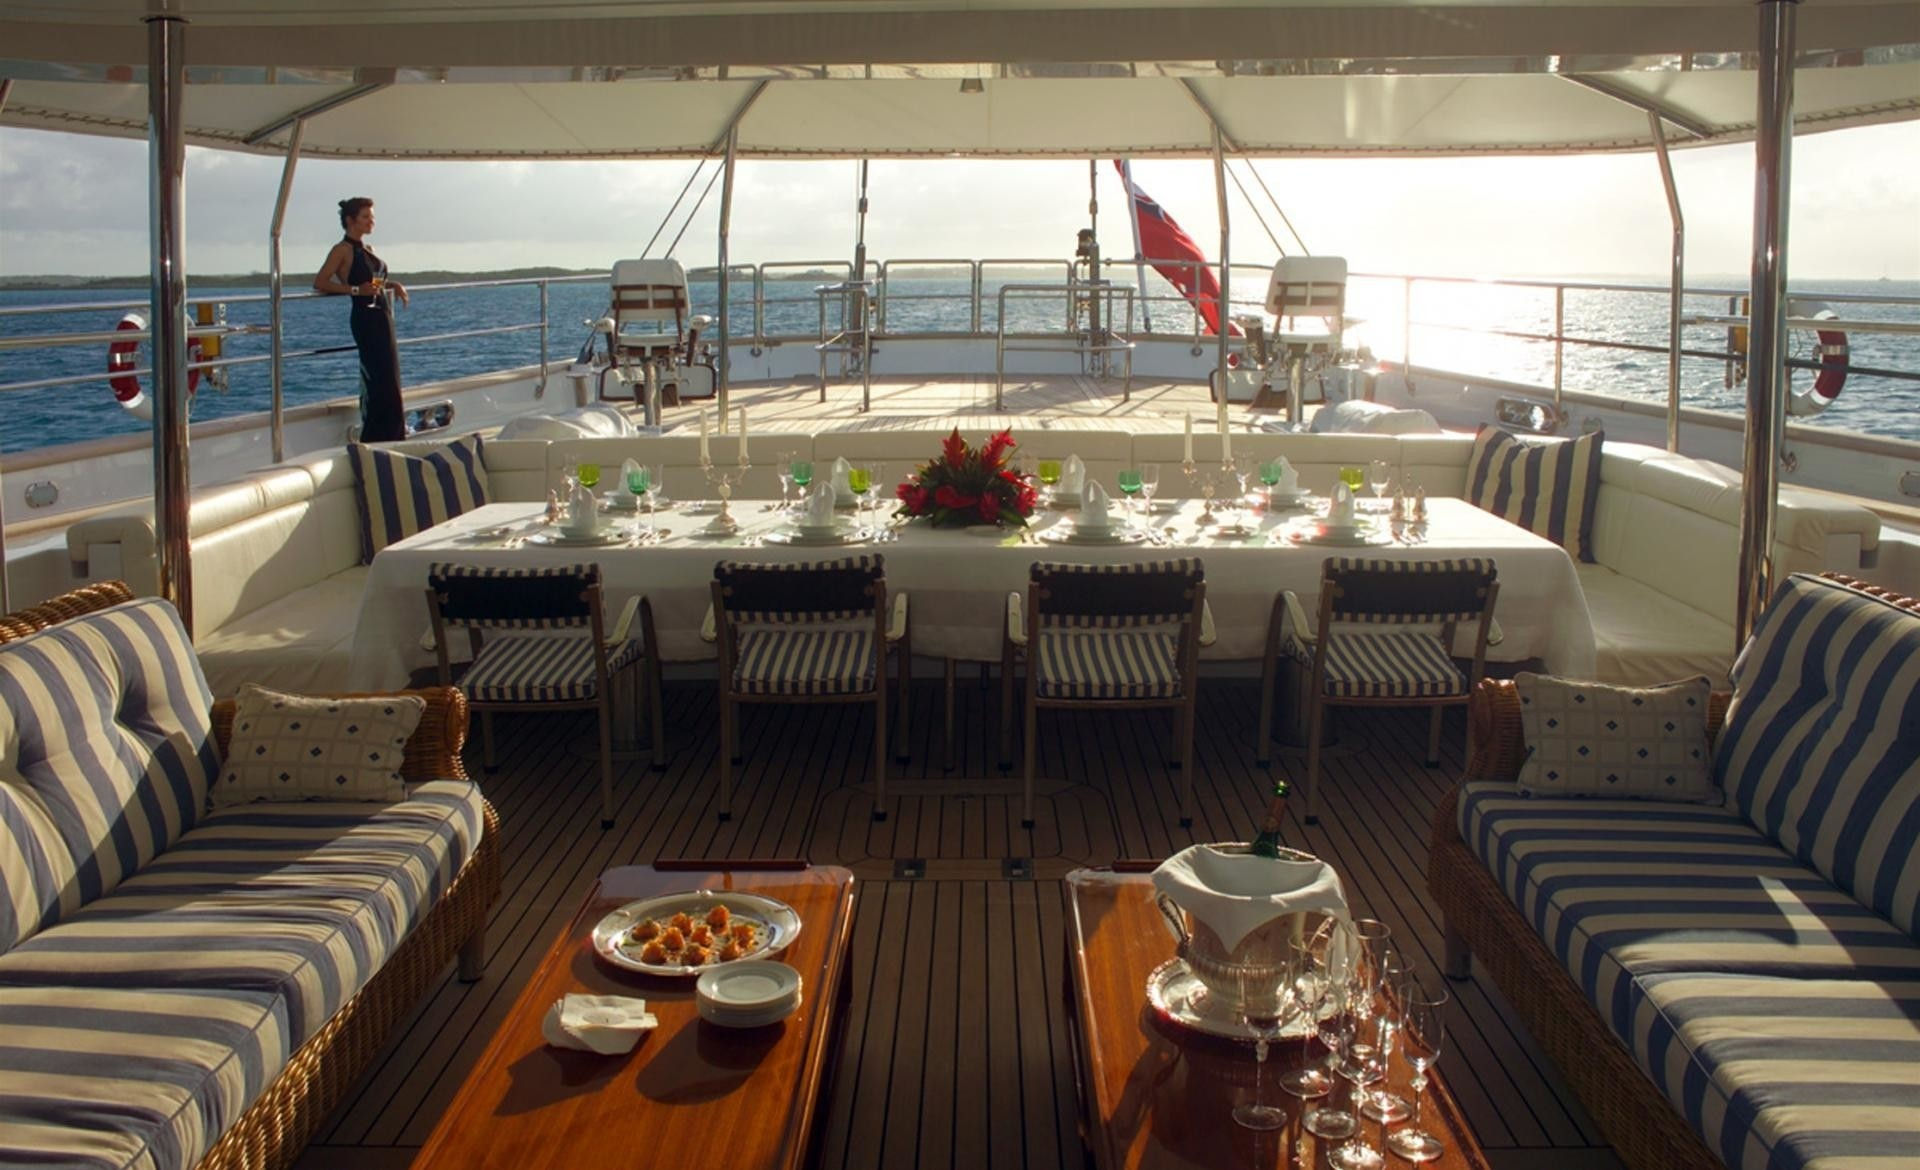 Aft Deck Sitting On Board Yacht SPIRIT OF THE C'S